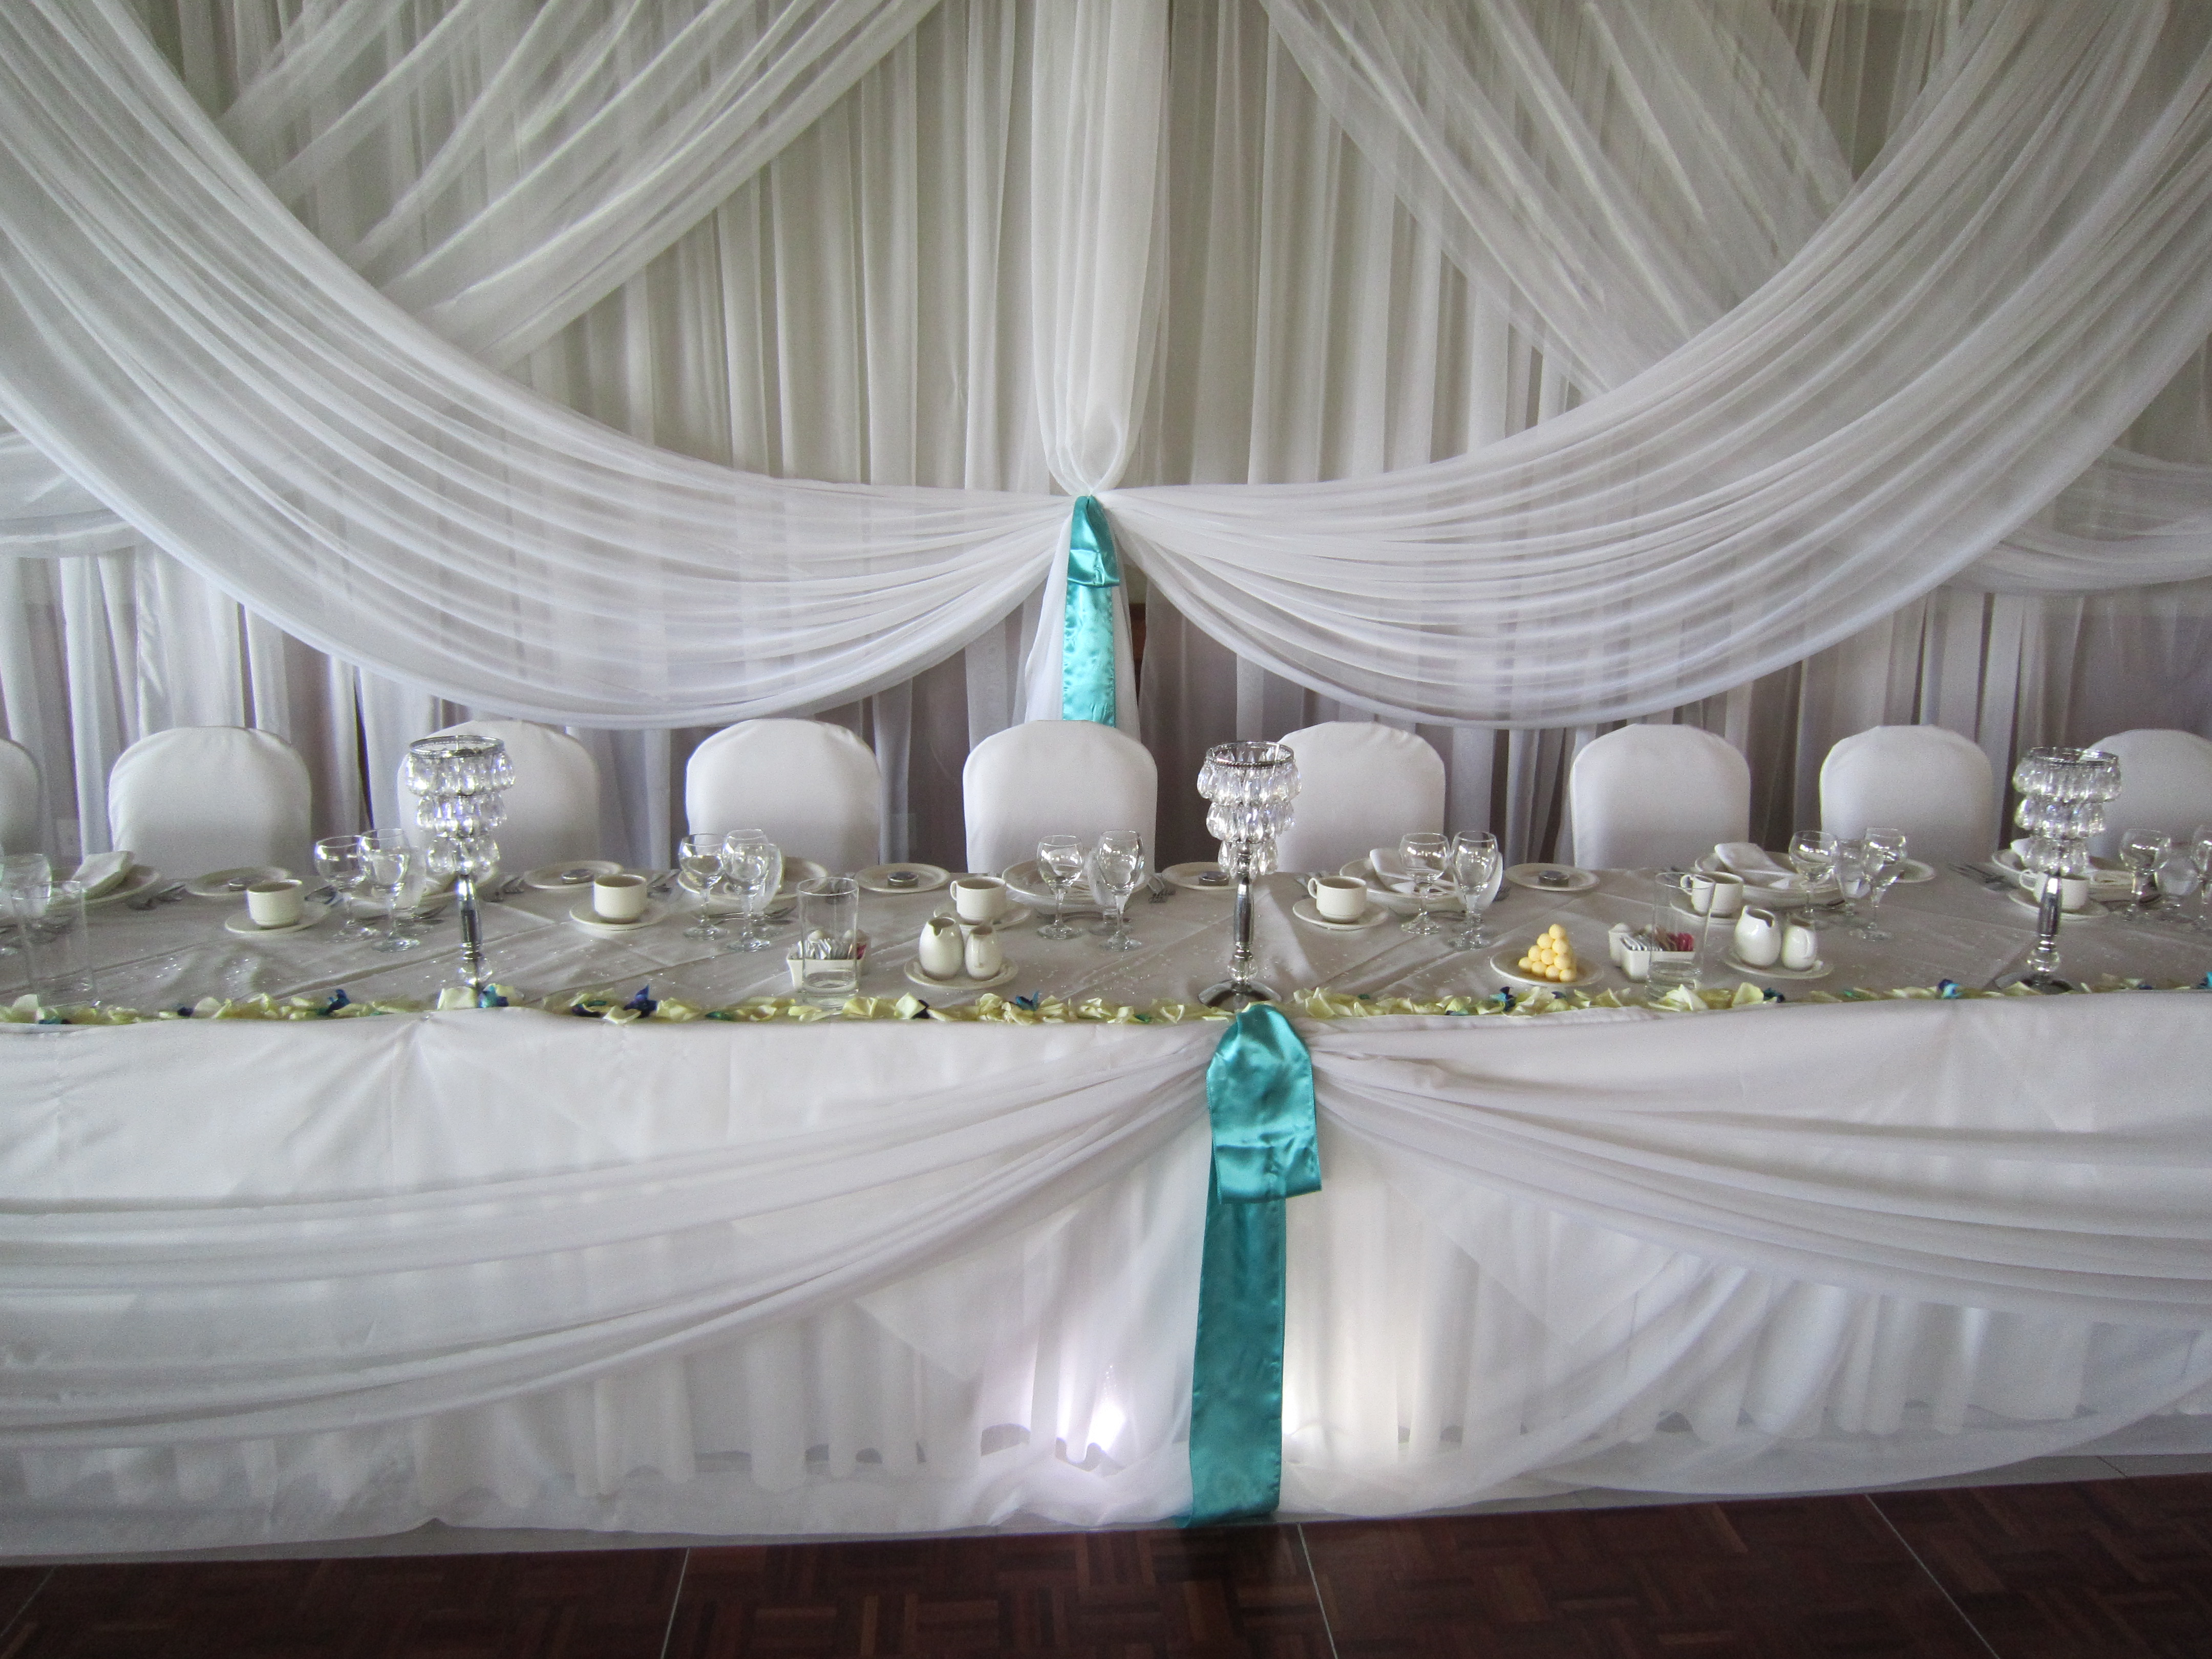 Head Table Draping With Spot Lights